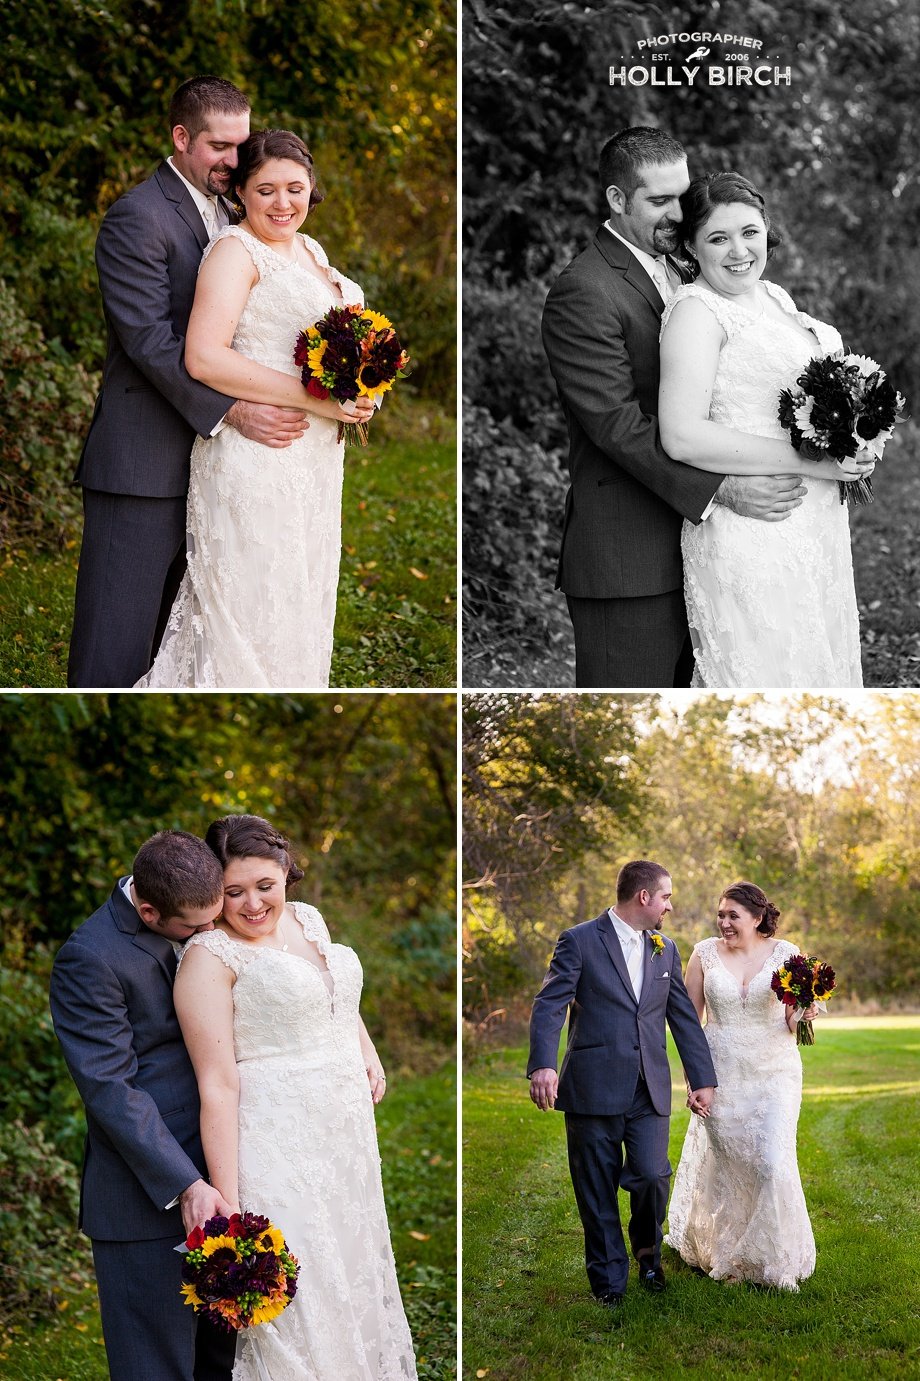 images of bride and groom together